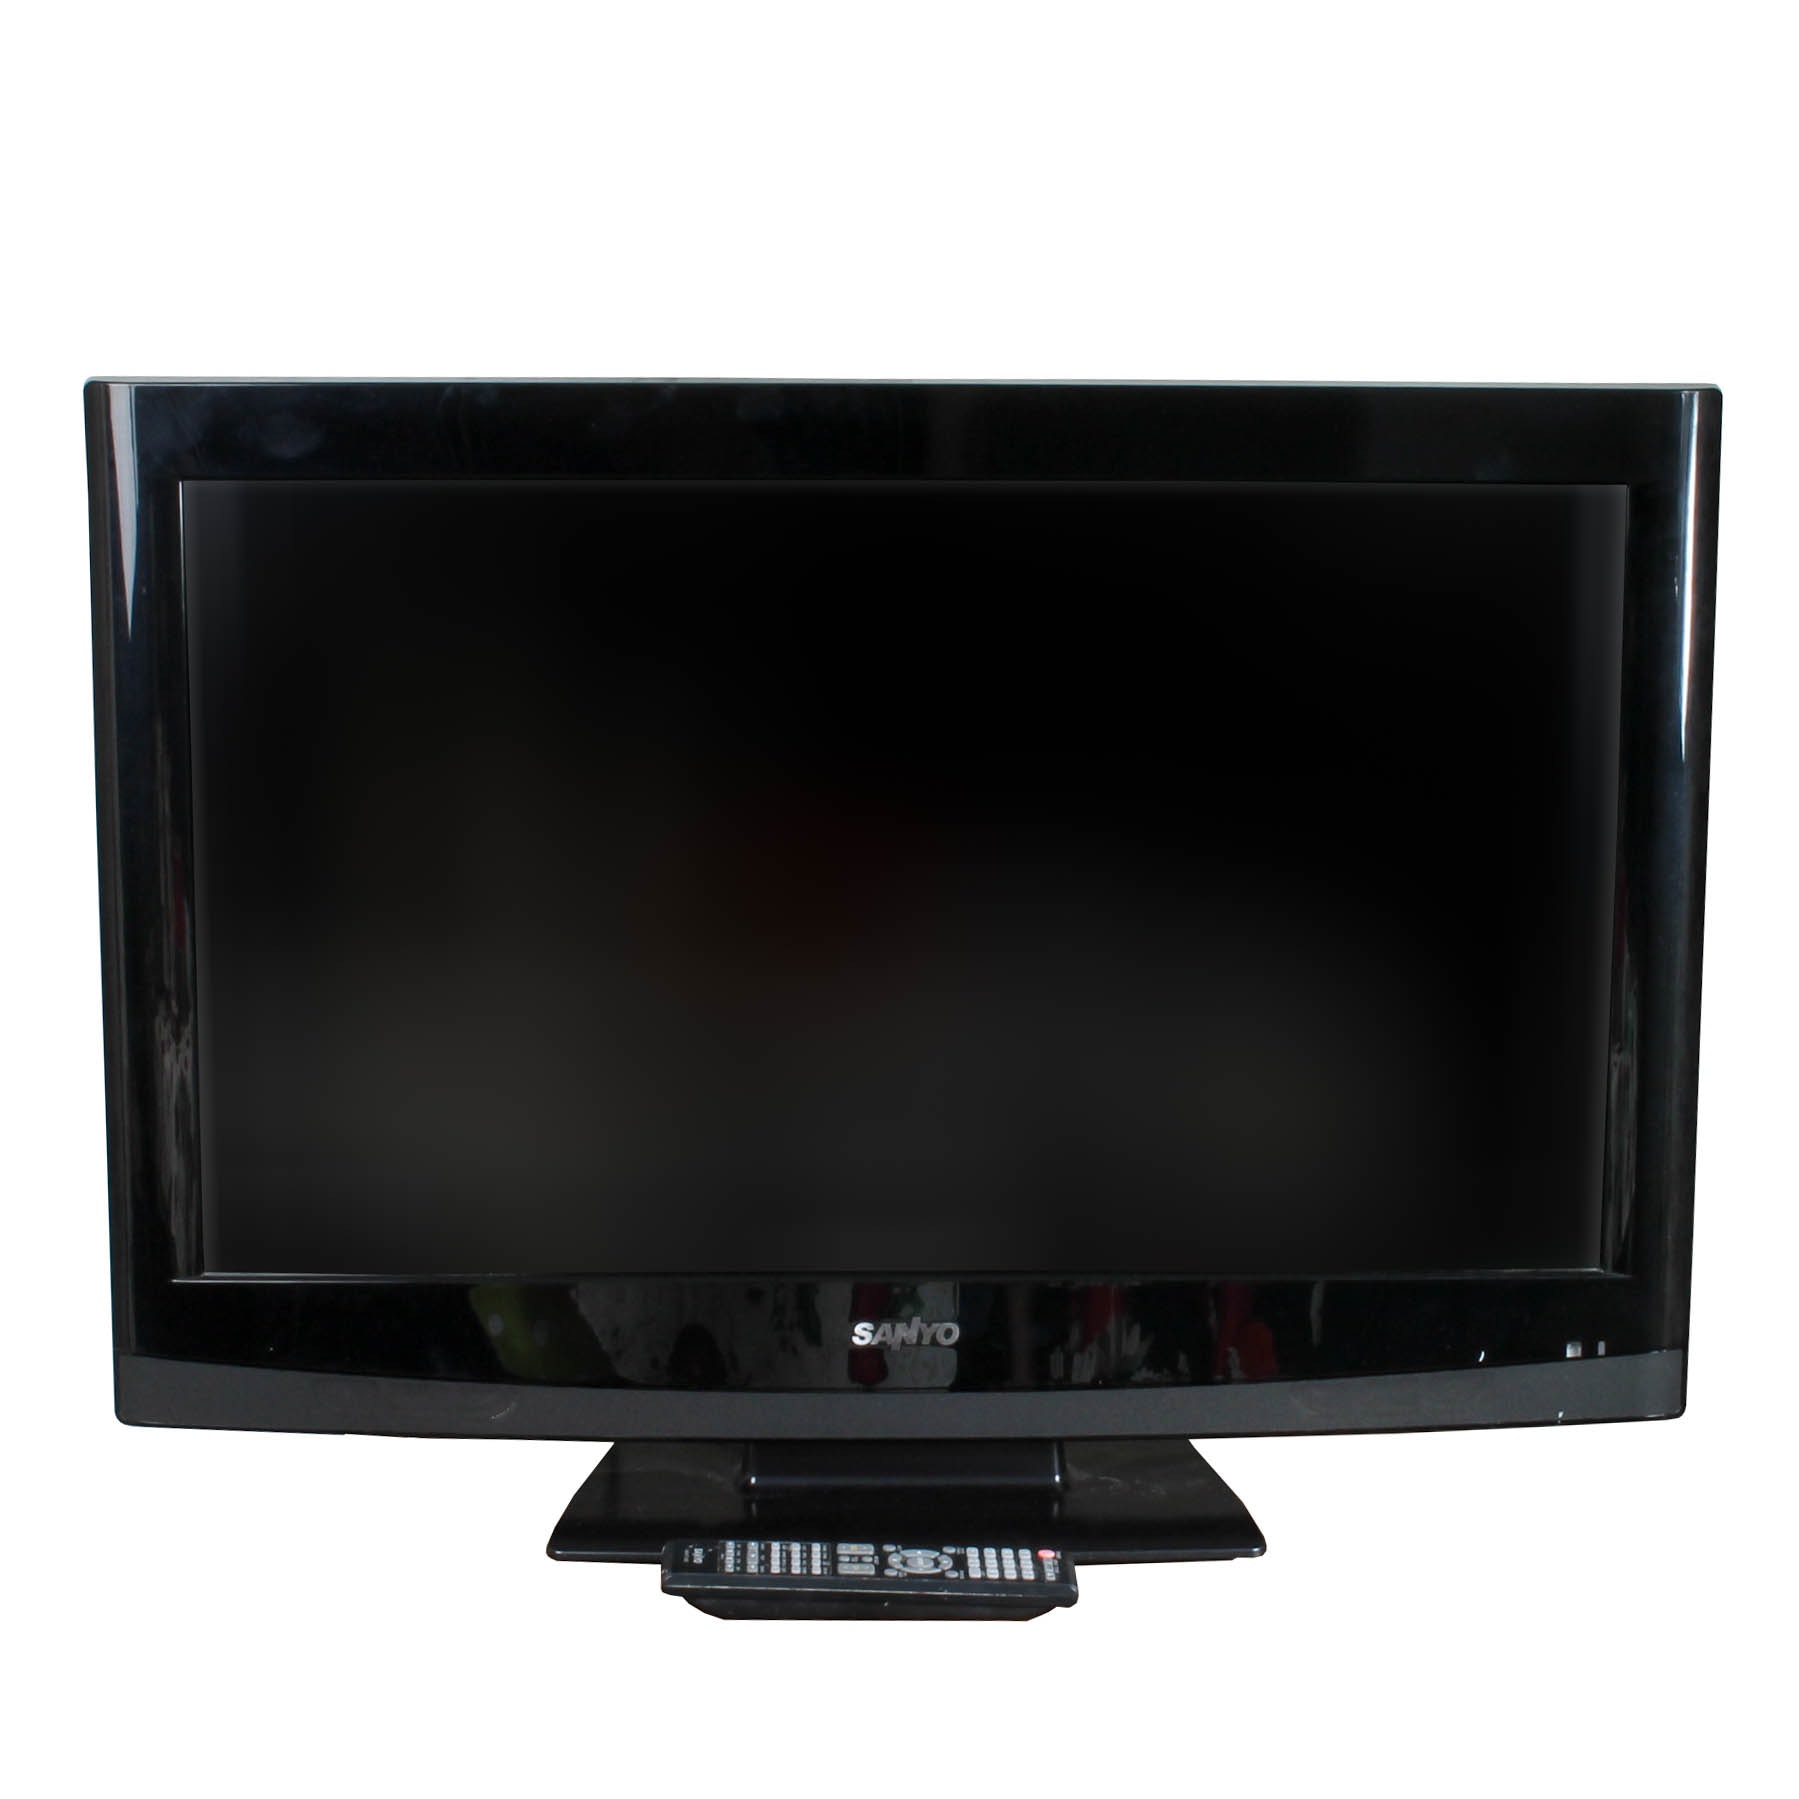 Sanyo LCD Television With Built-In DVD Player